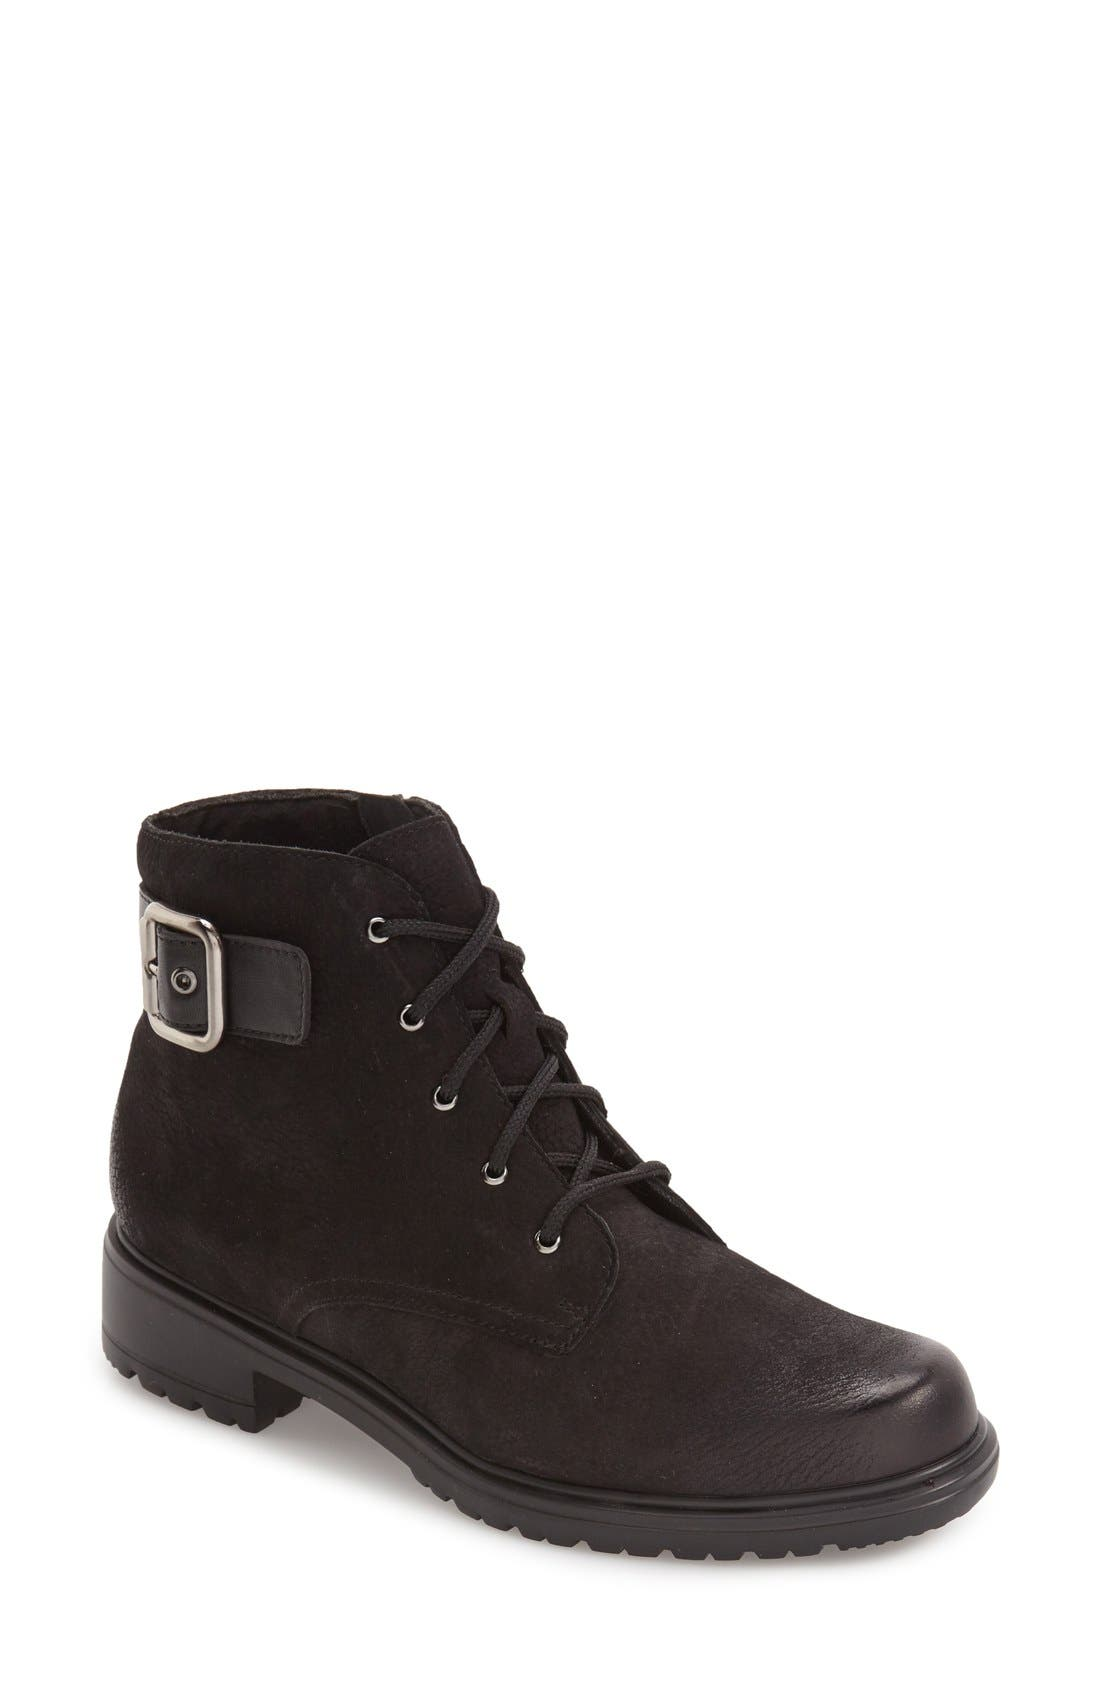 Munro Bradley Water Resistant Boot- Black